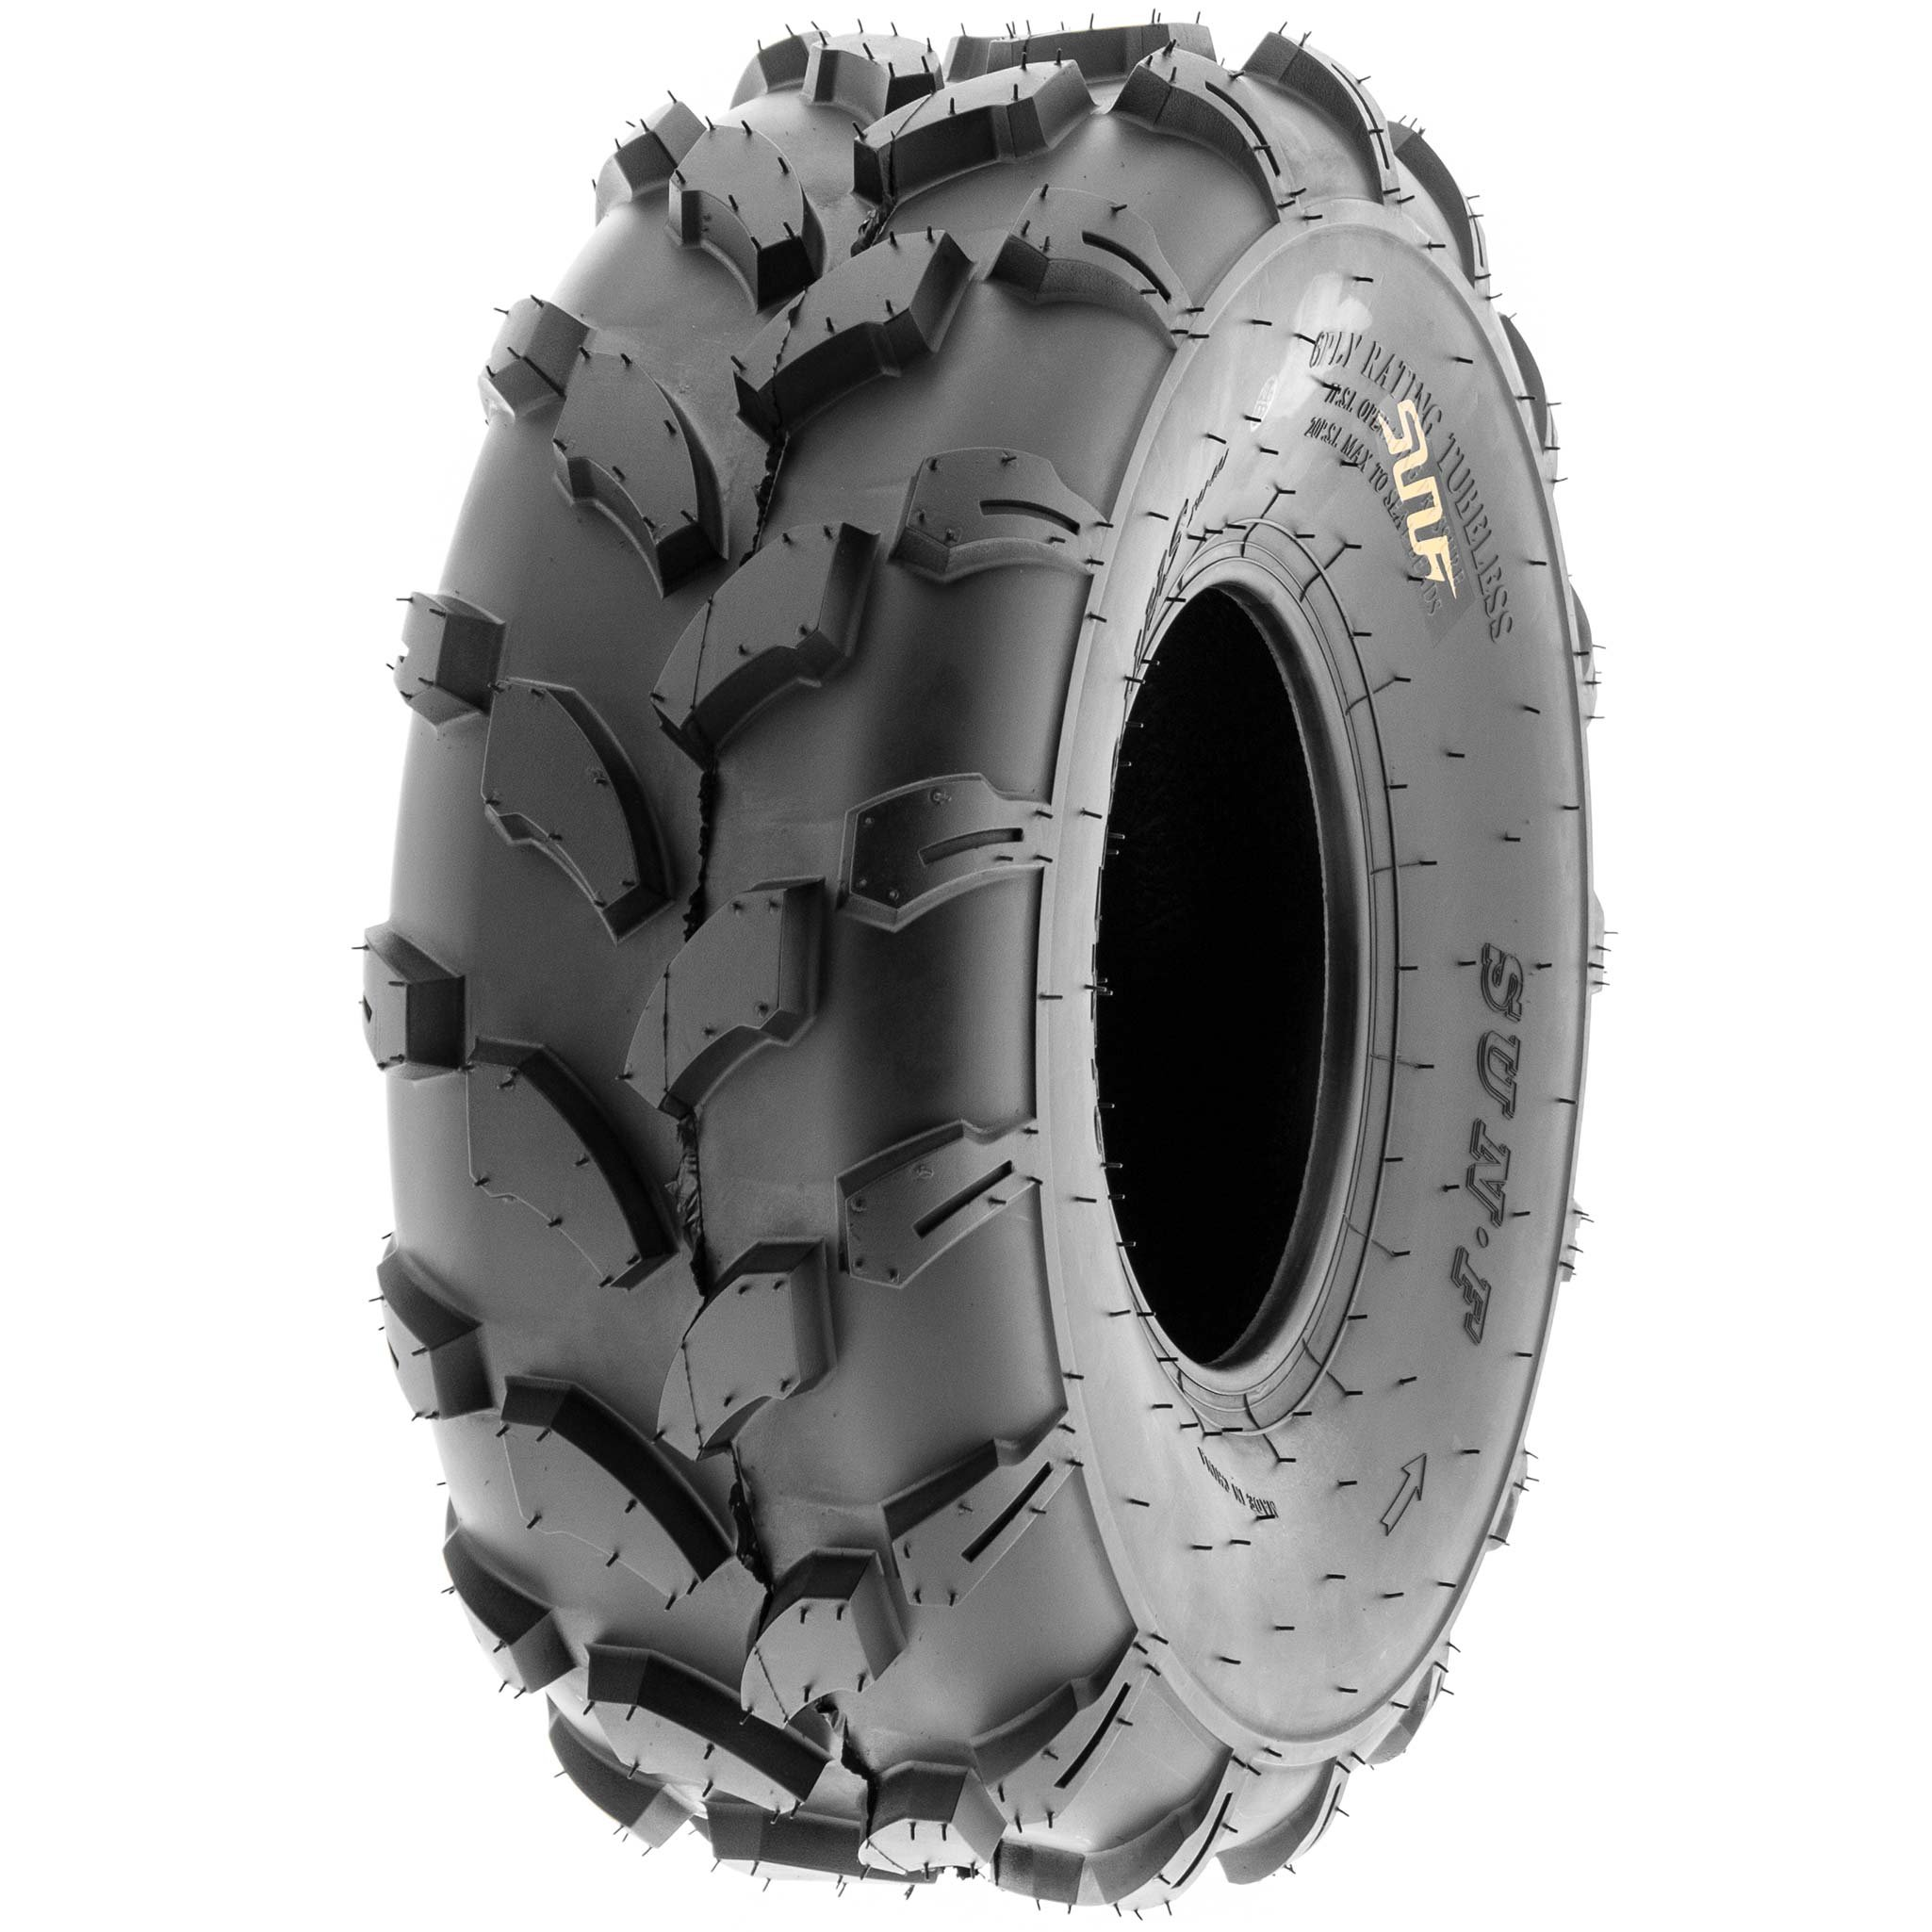 SunF 19x7-8 19x7x8 ATV UTV All Terrain Trail Replacement 6 PR Tubeless Tires A003, [Set of 2] by SUNF (Image #8)